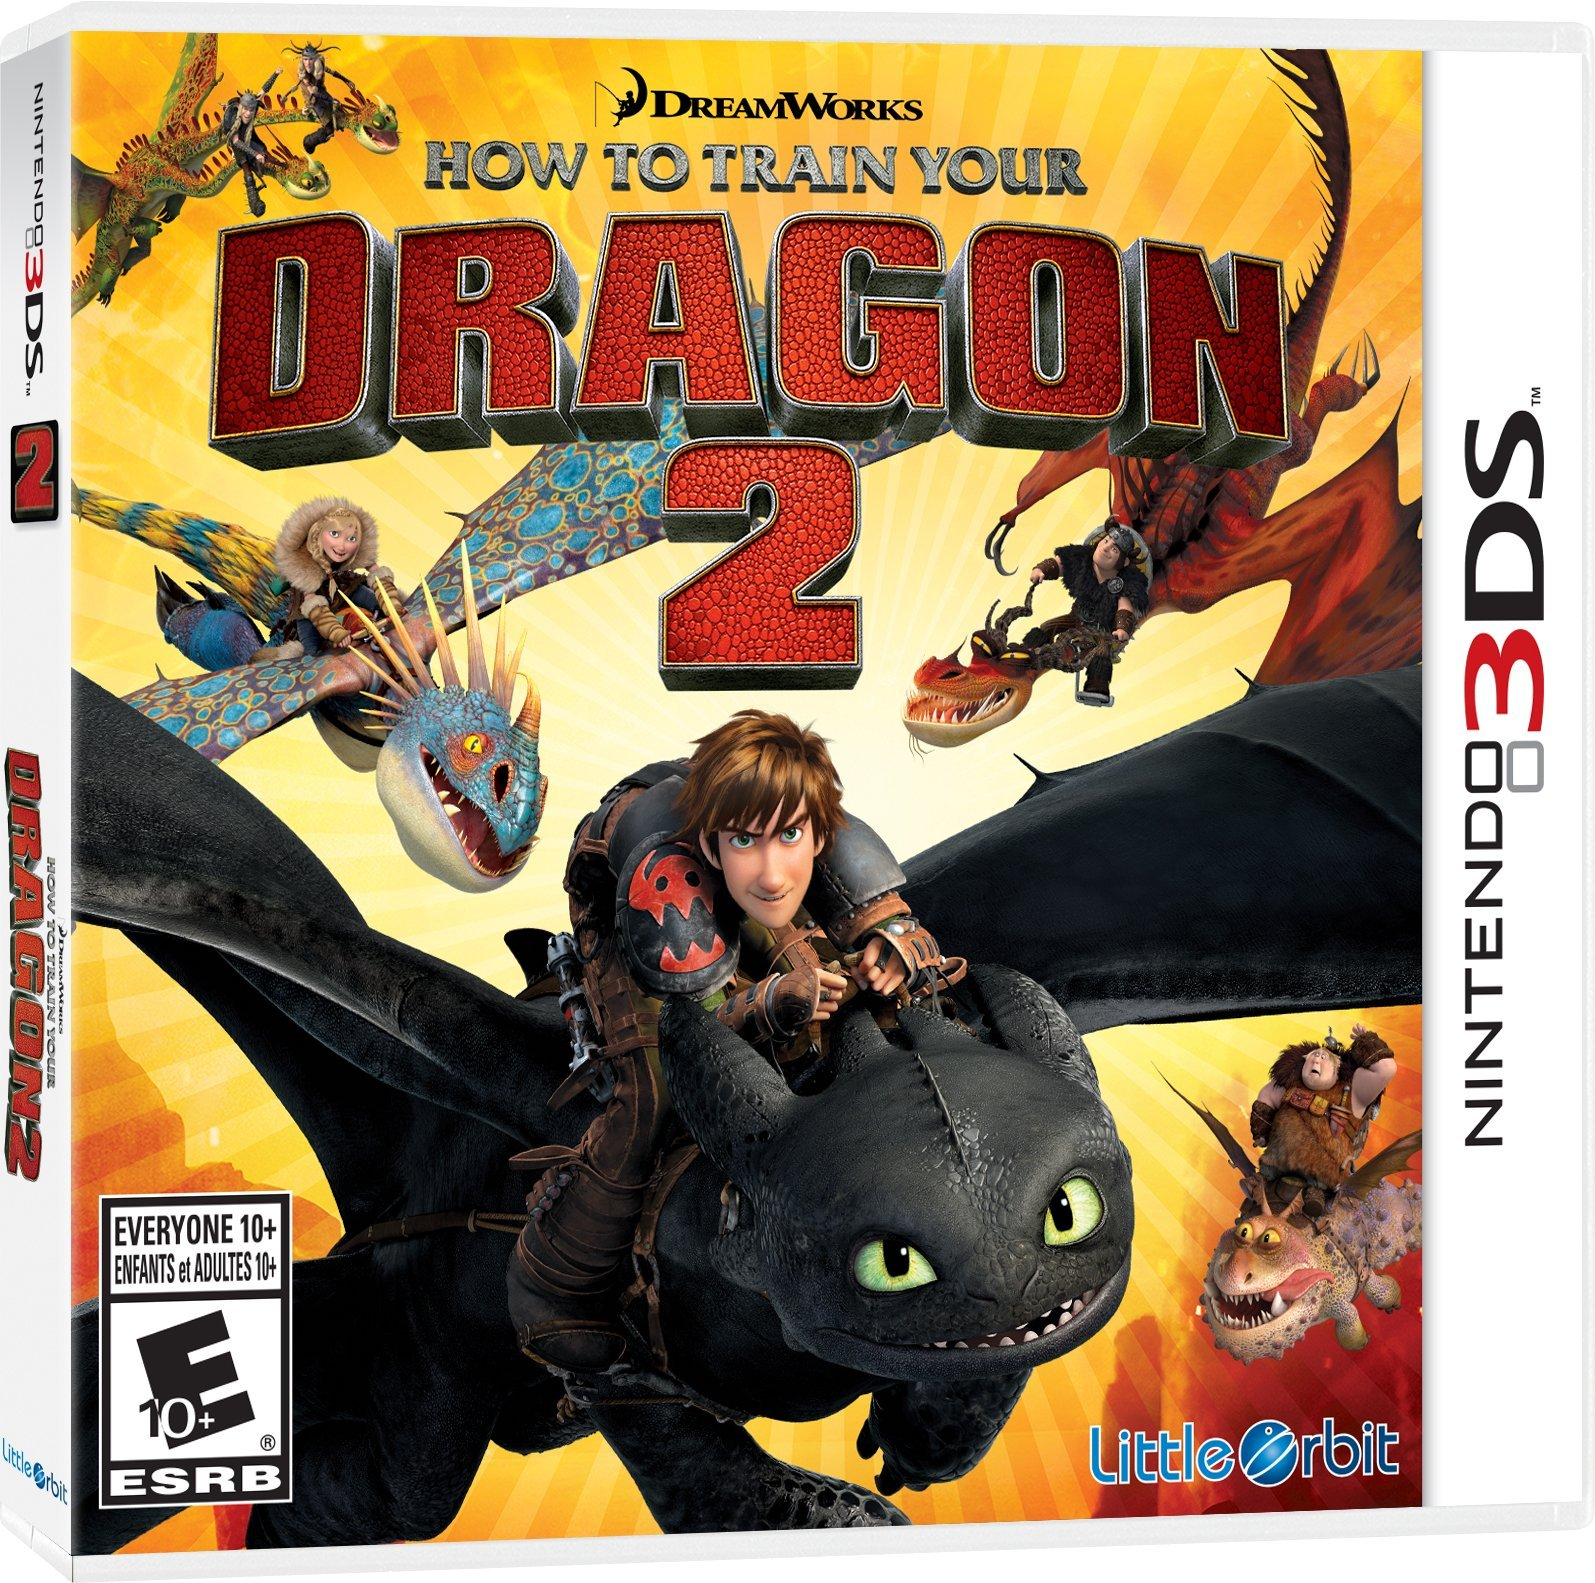 Amazon.com: how to train your dragon toys: Toys & Games